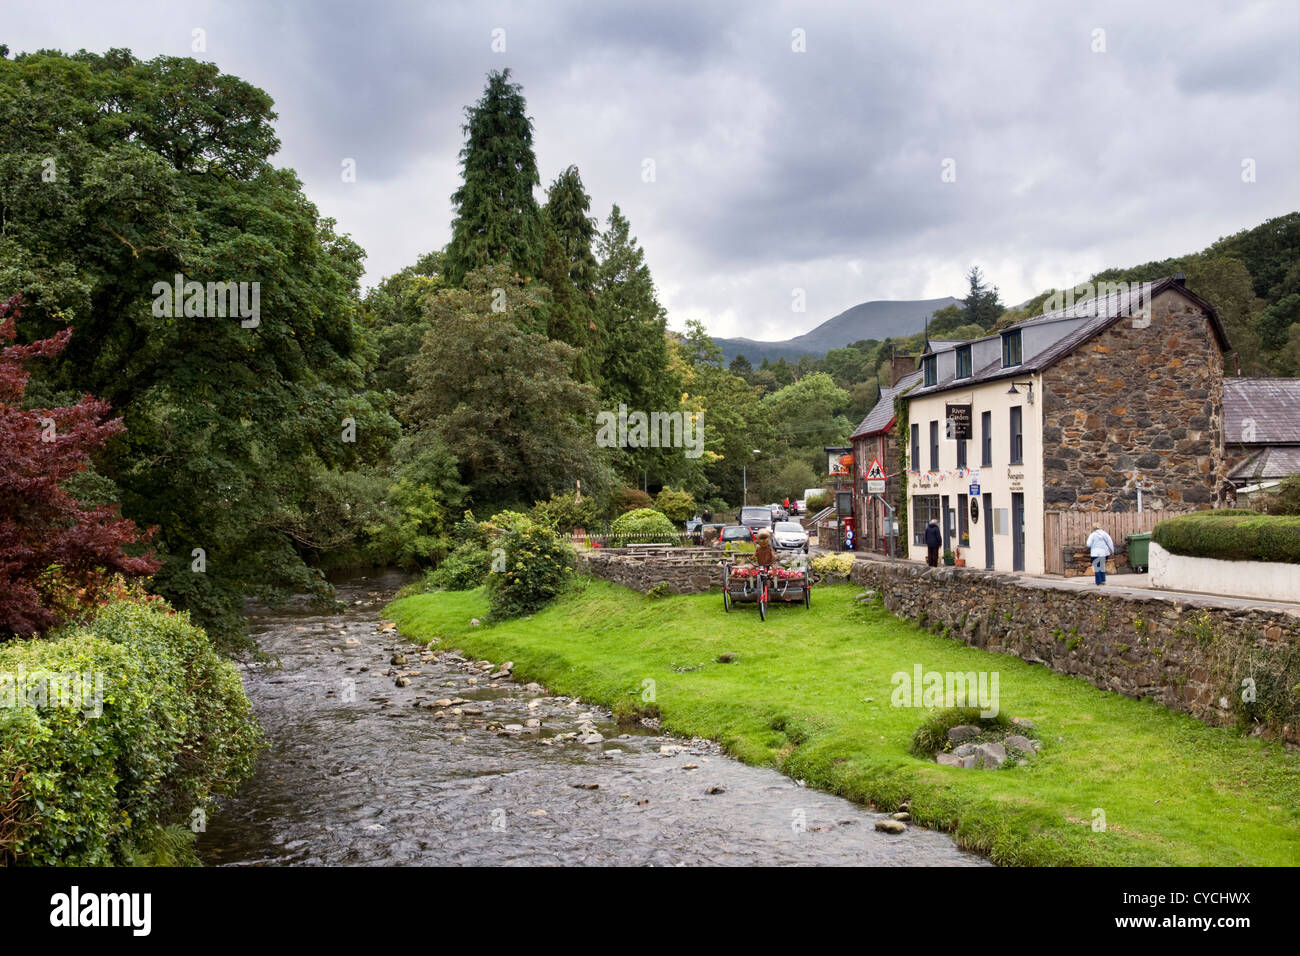 Picturesque village of Beddgelert, Snowdonia, Wales UK which is the meeting place of the two rivers Glaslyn and - Stock Image